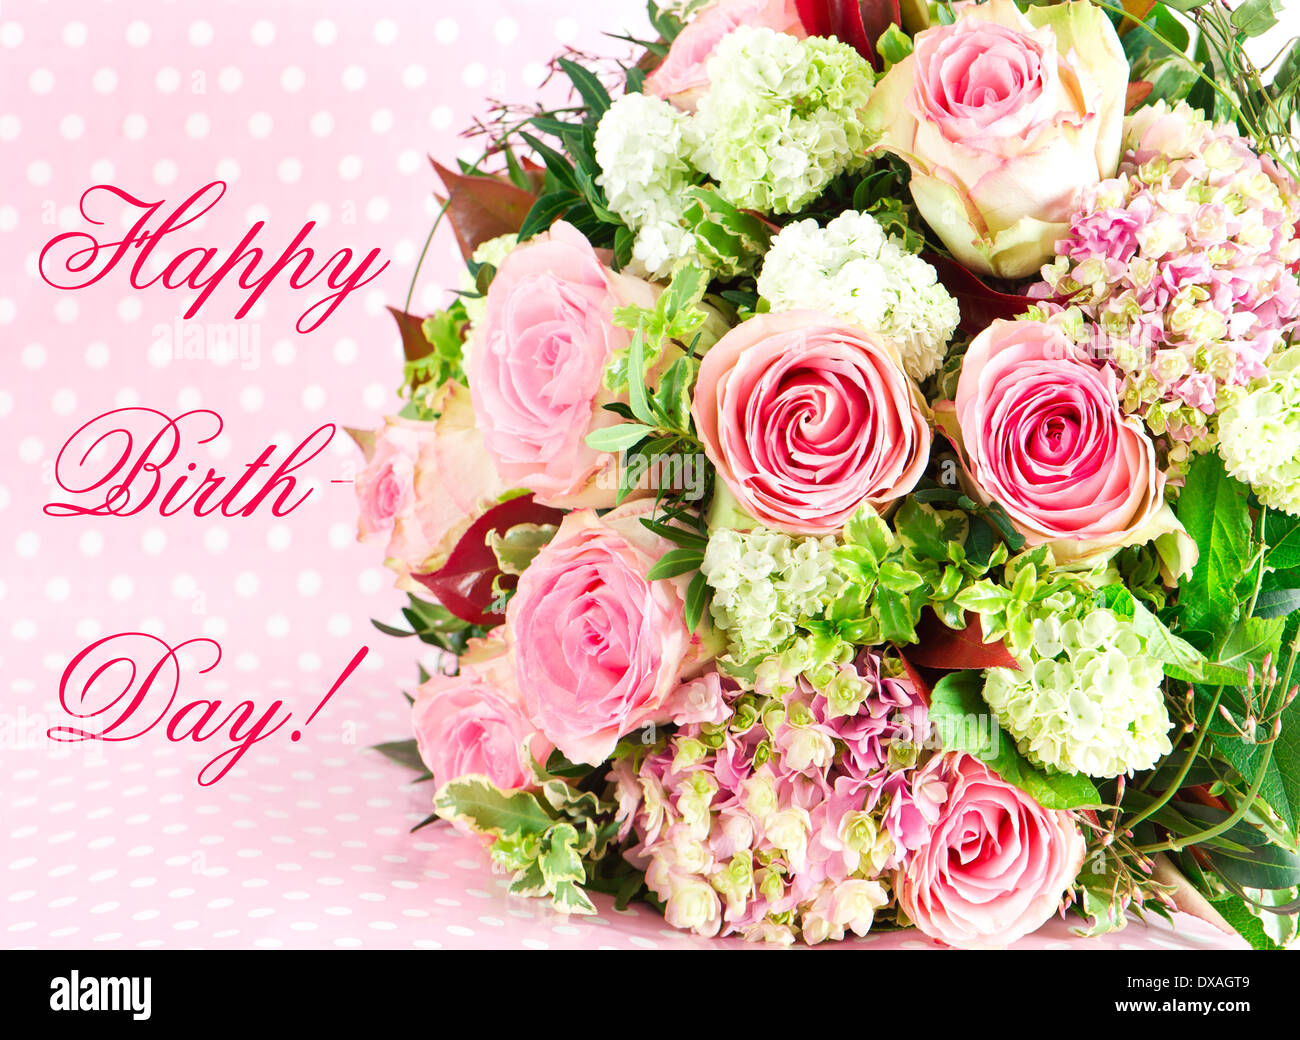 Happy Birthday Beautiful Flowers Bouquet Stock Photo 67844905 Alamy